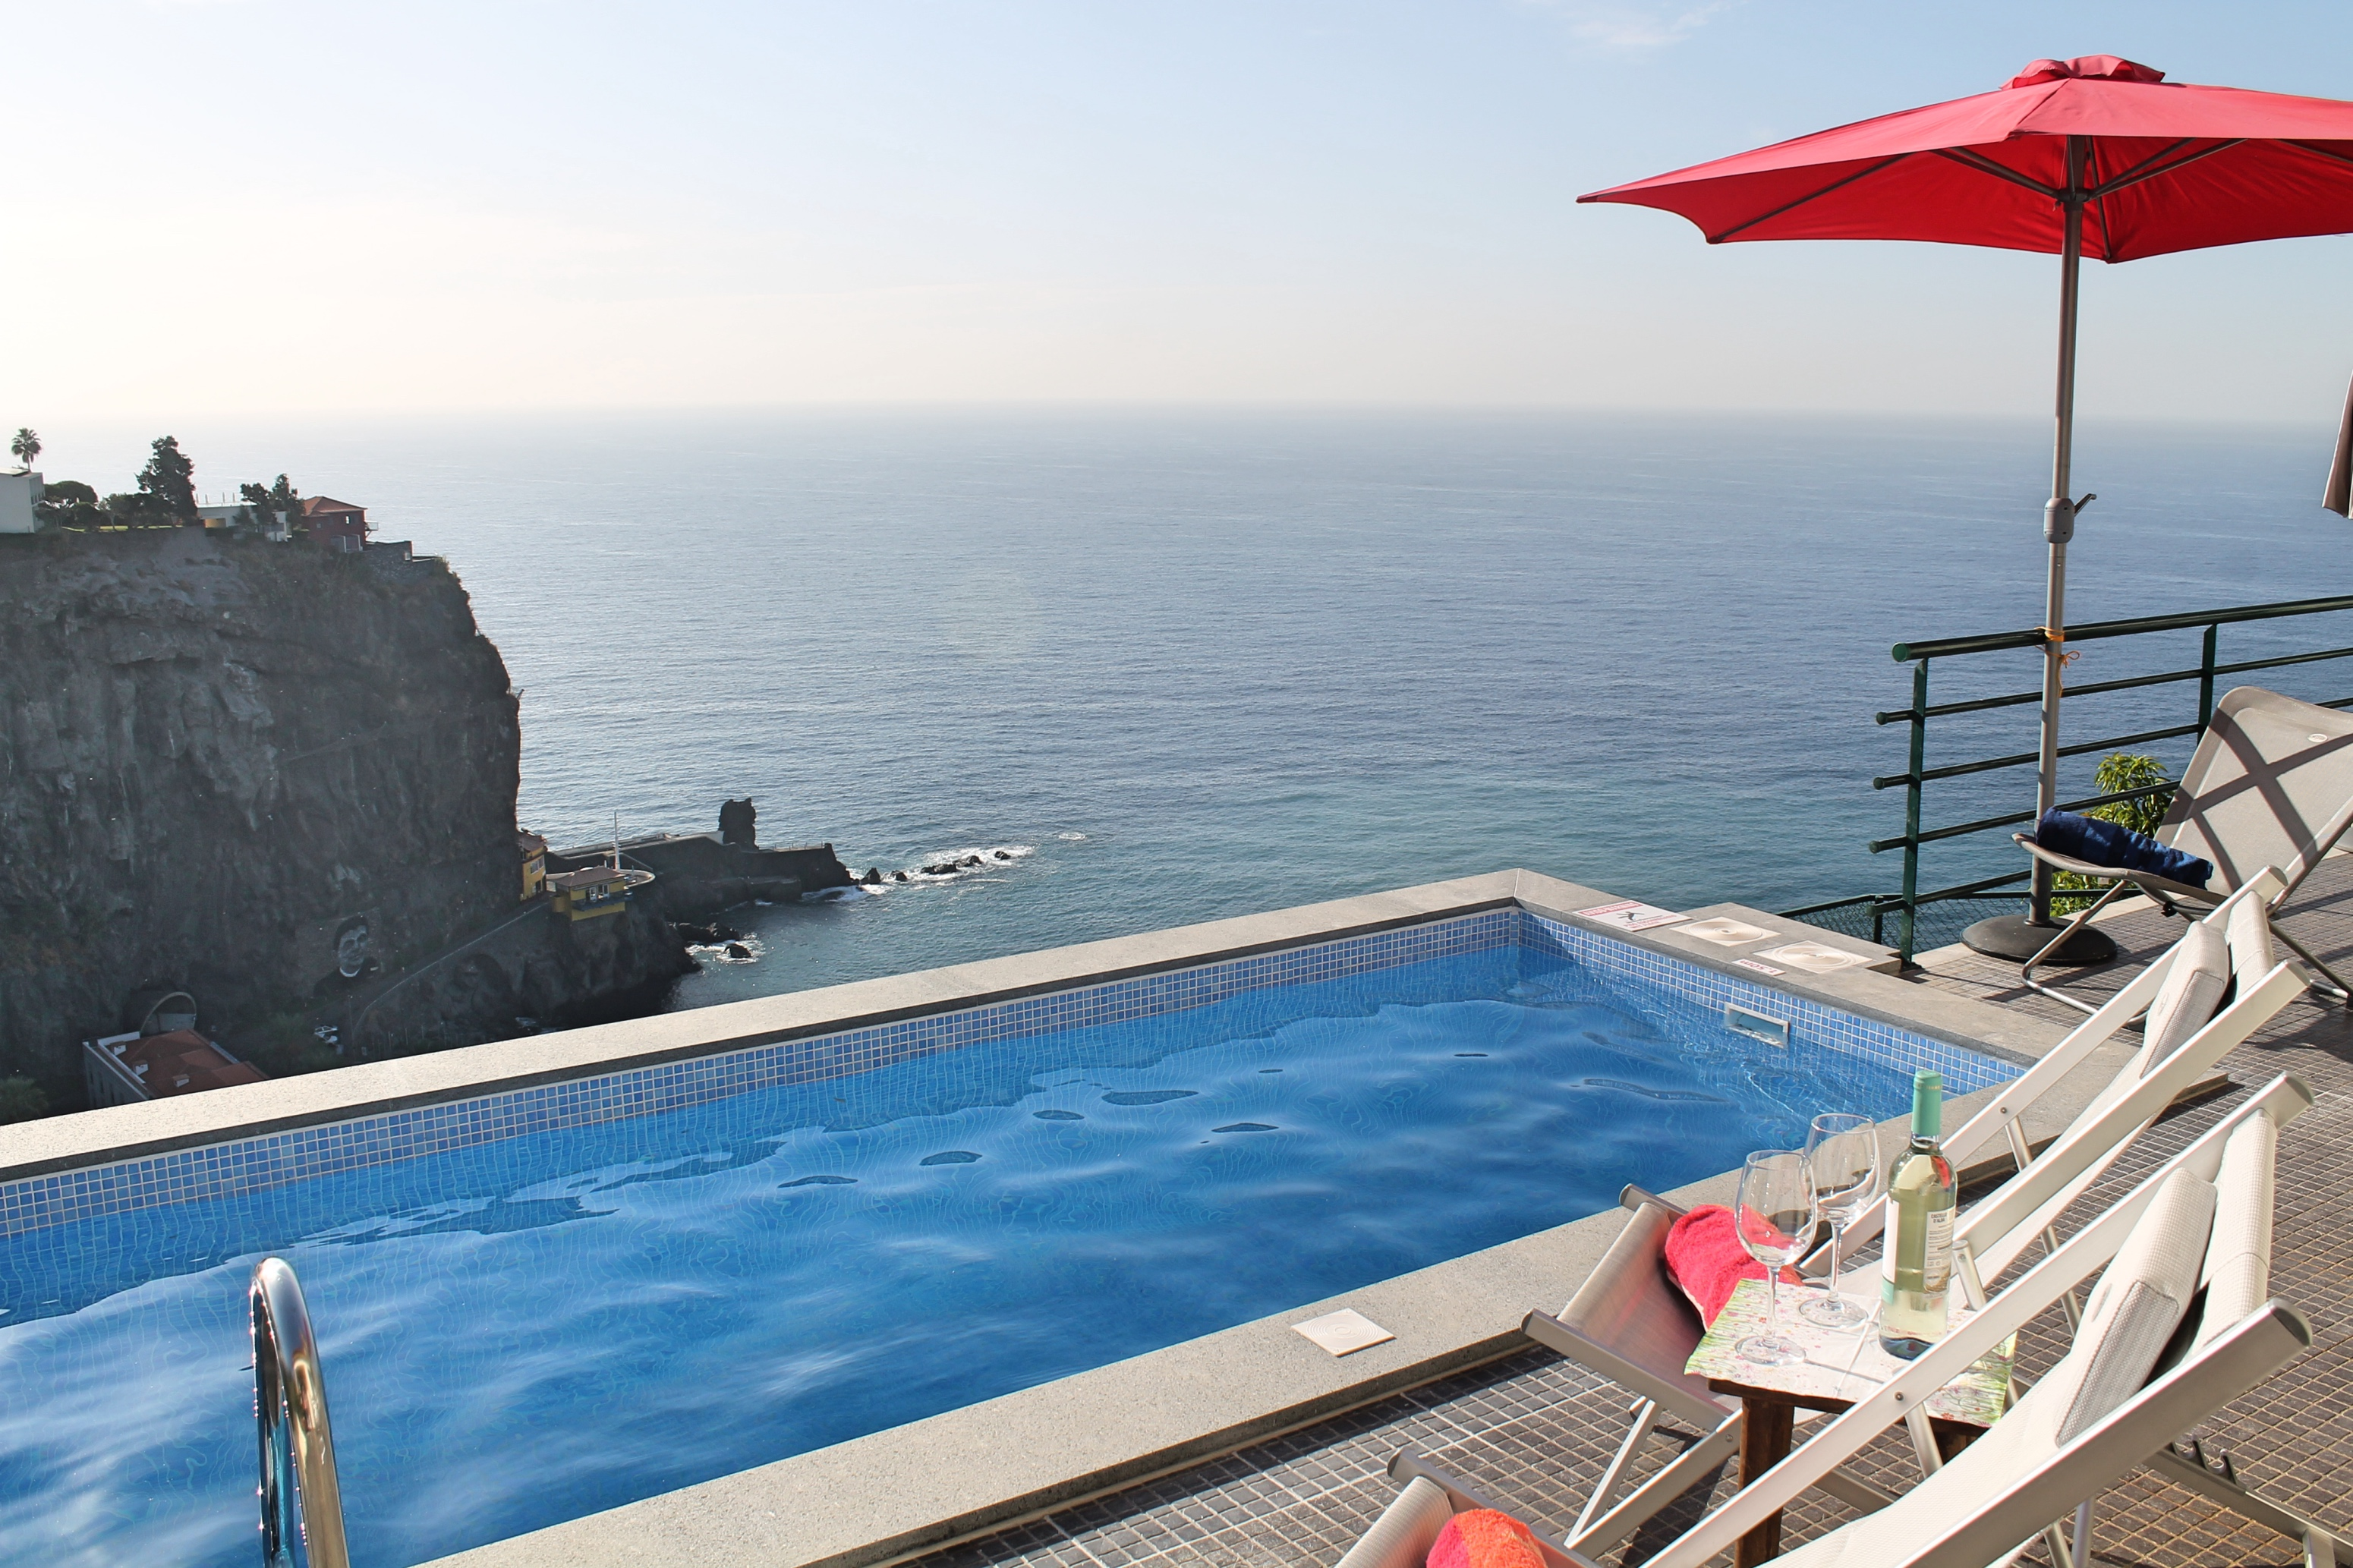 Outdoor Küche Pico Perched Above Village With Heated Pool Ocean Views Casa Jardim Mar